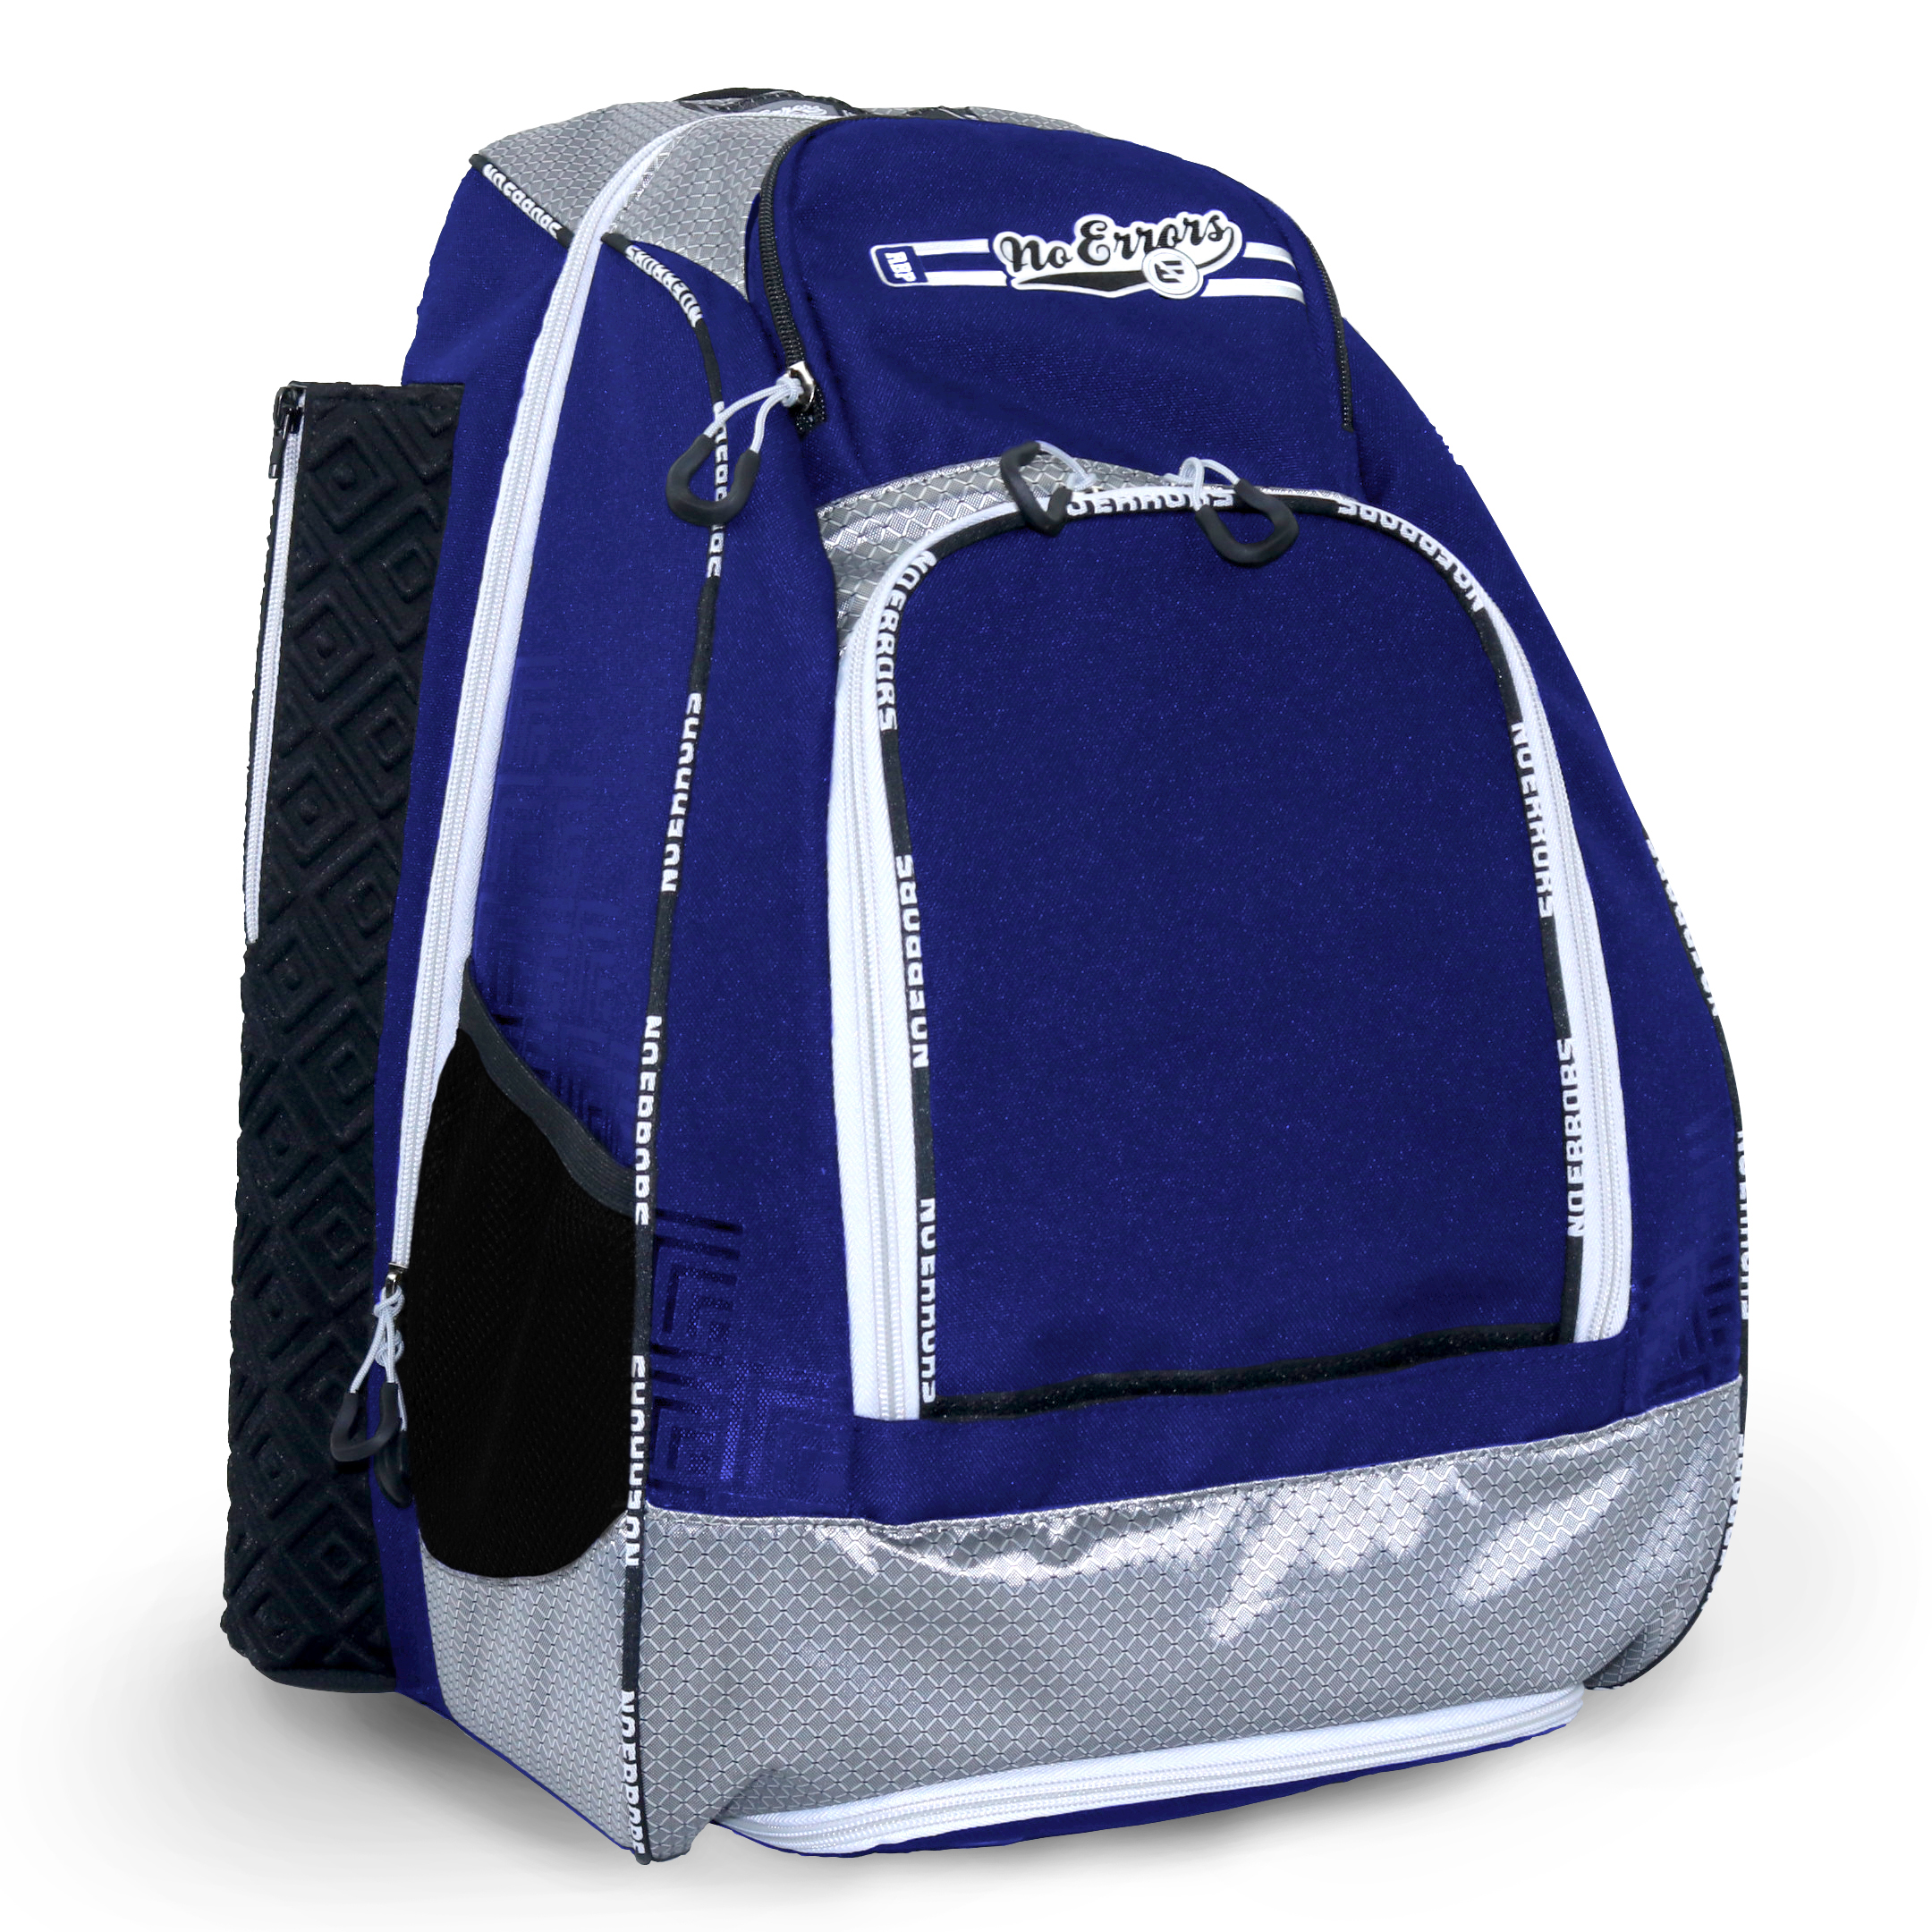 catcher's backpack